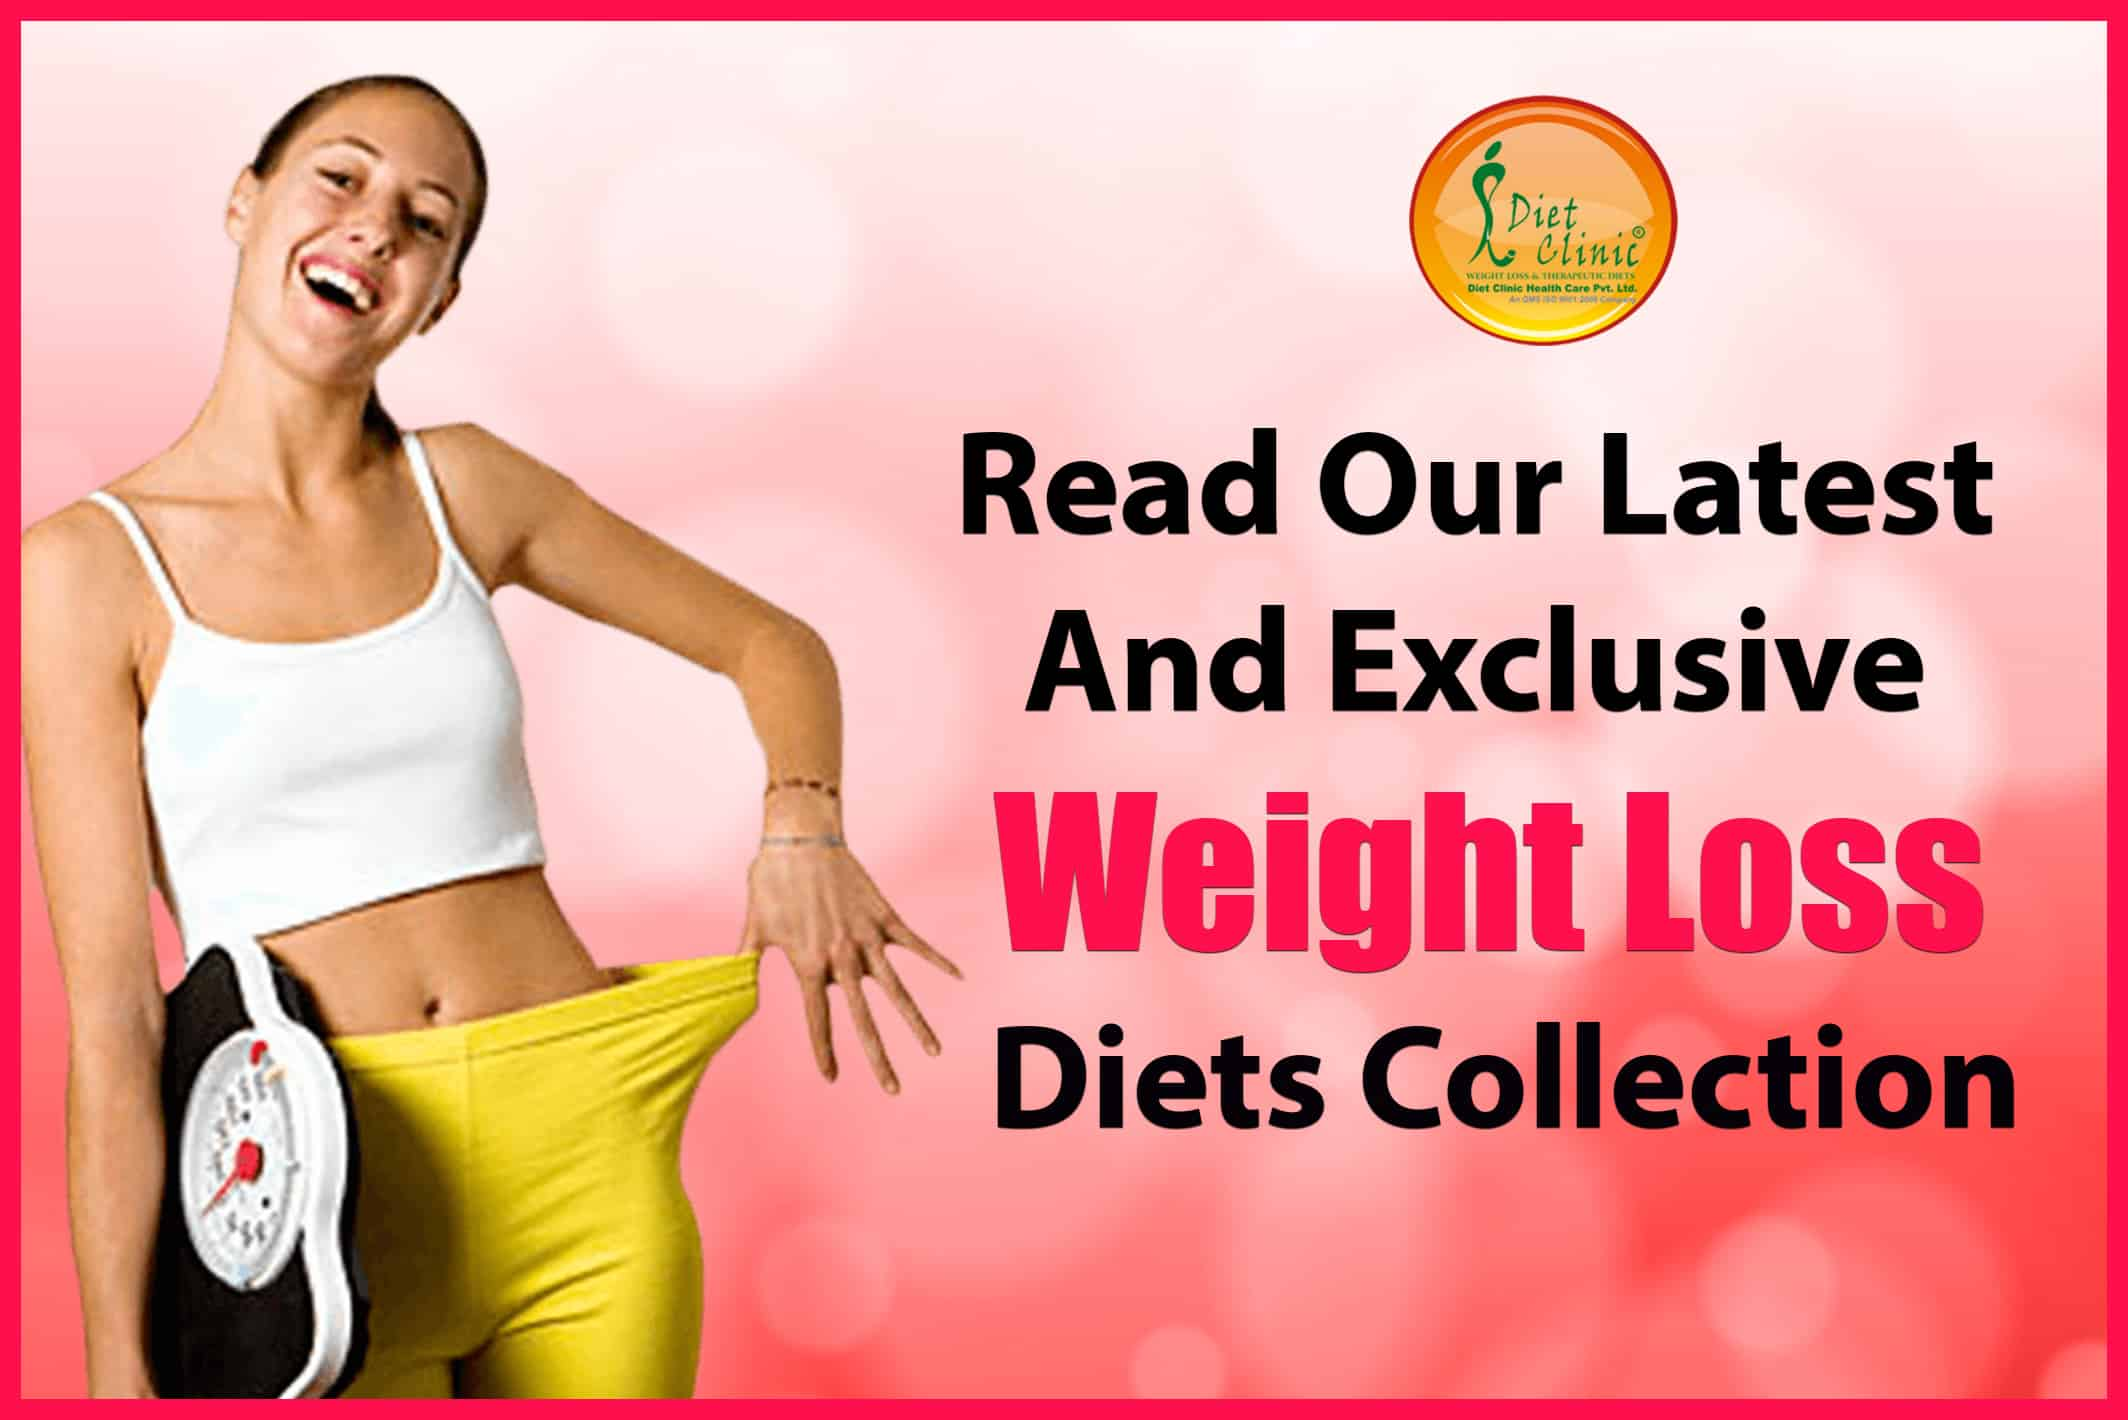 Weight Loss diets Collection.jpg